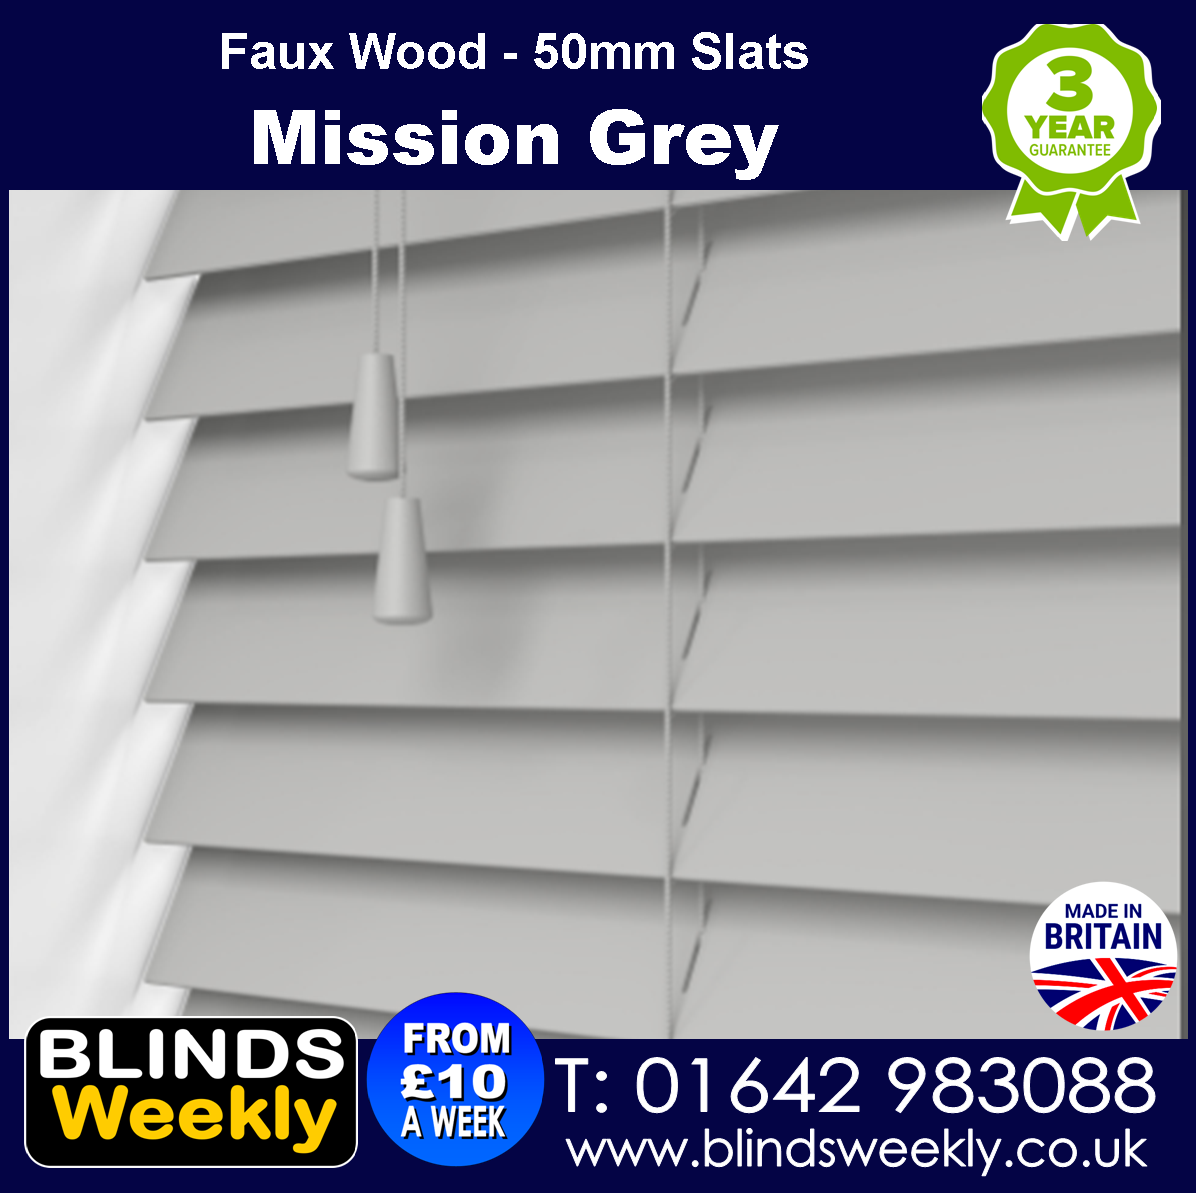 Mission Grey Faux Wood Blinds 50mm Slats from Blinds Weekly